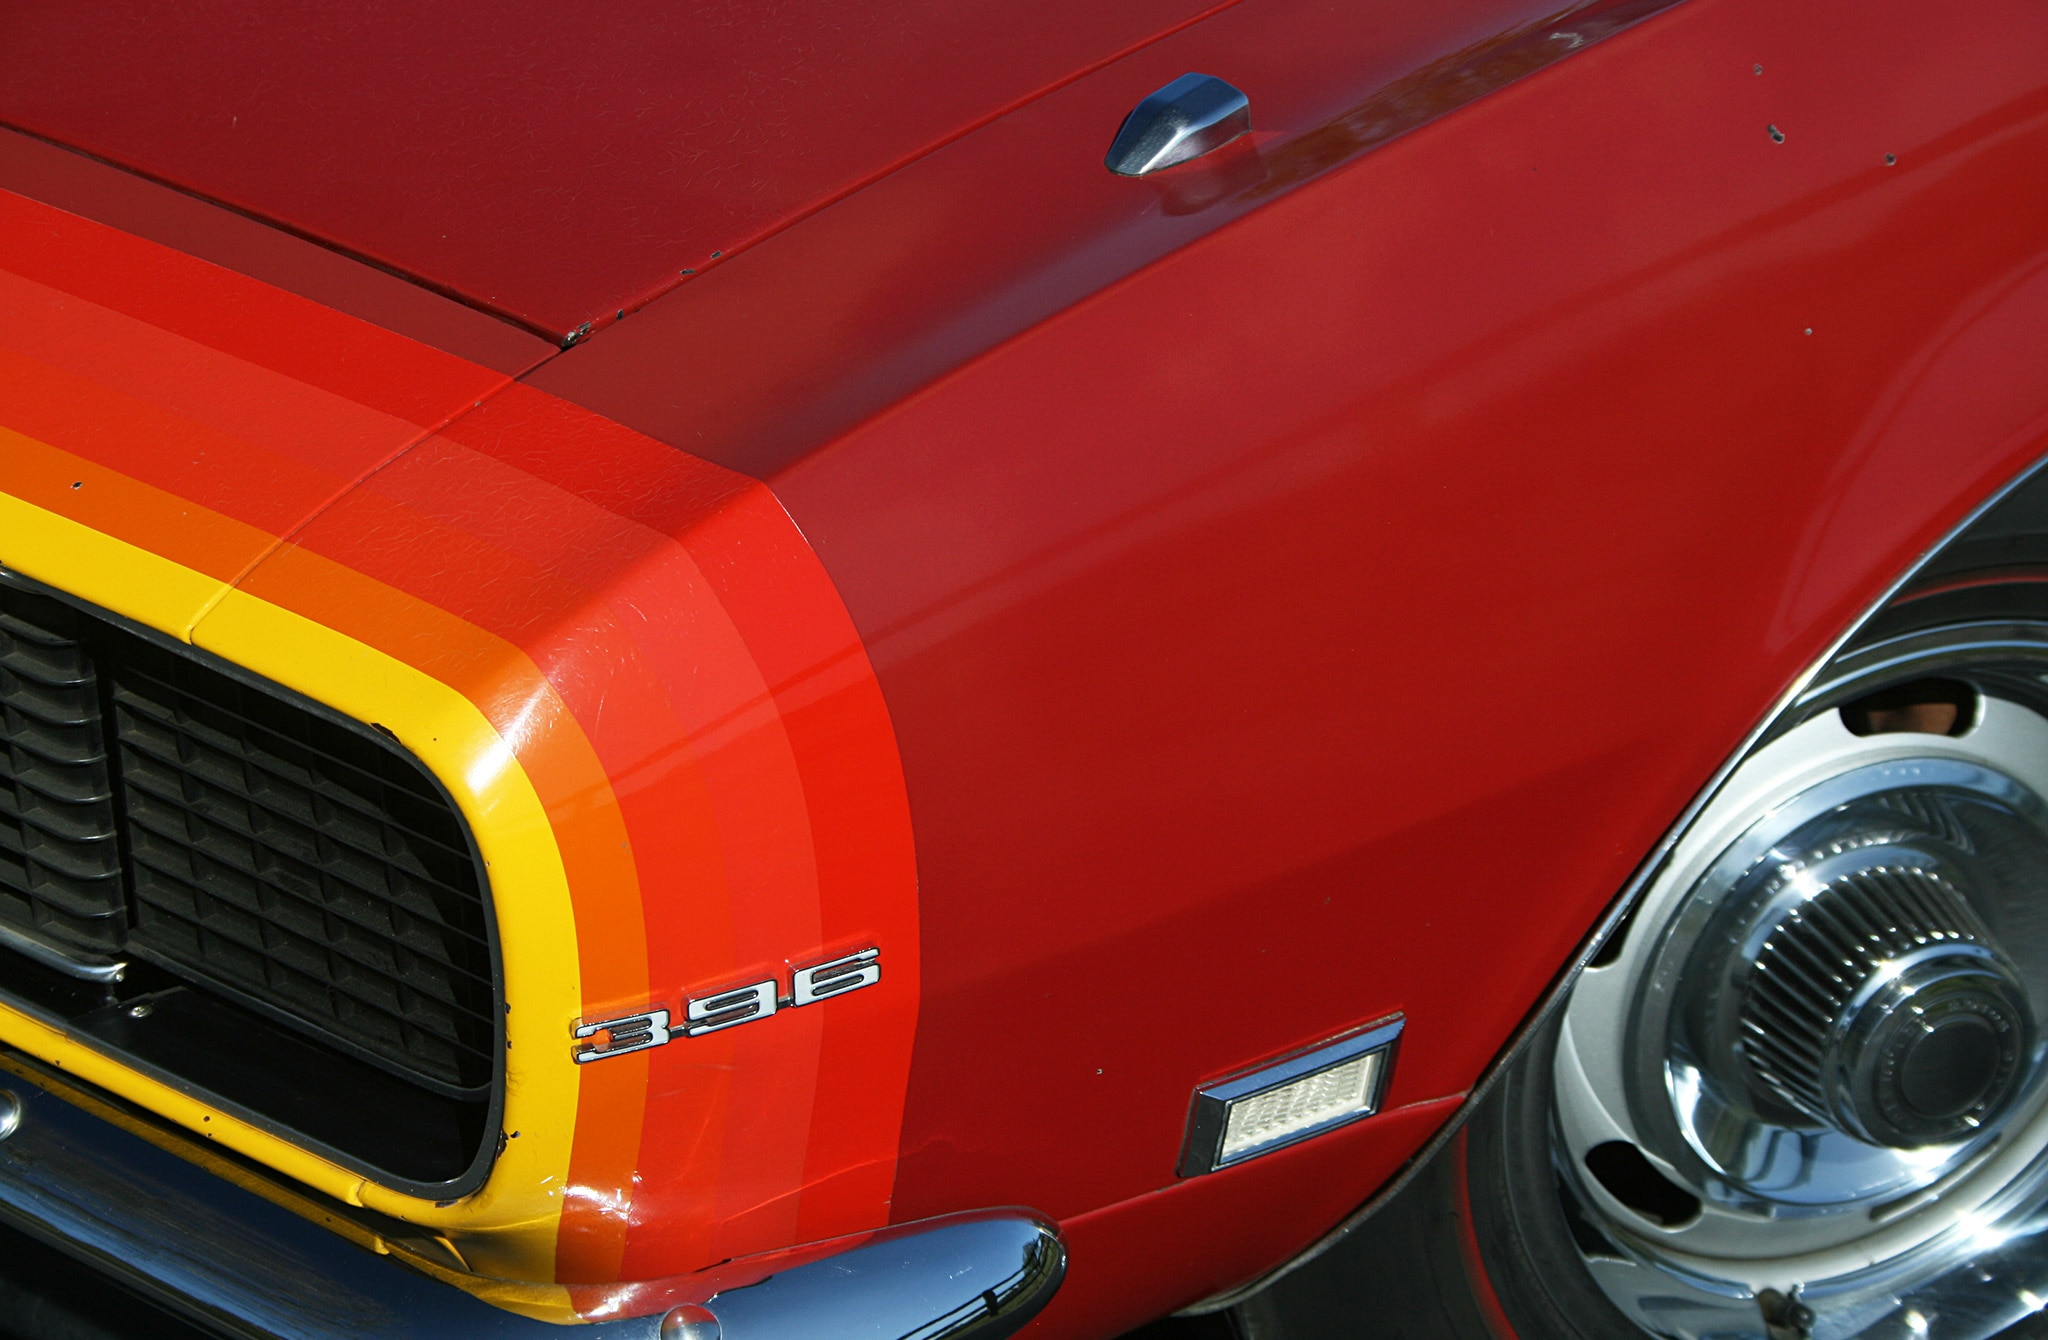 1968 Chevrolet Camaro Ss Multicolored Nose Detail Wheel